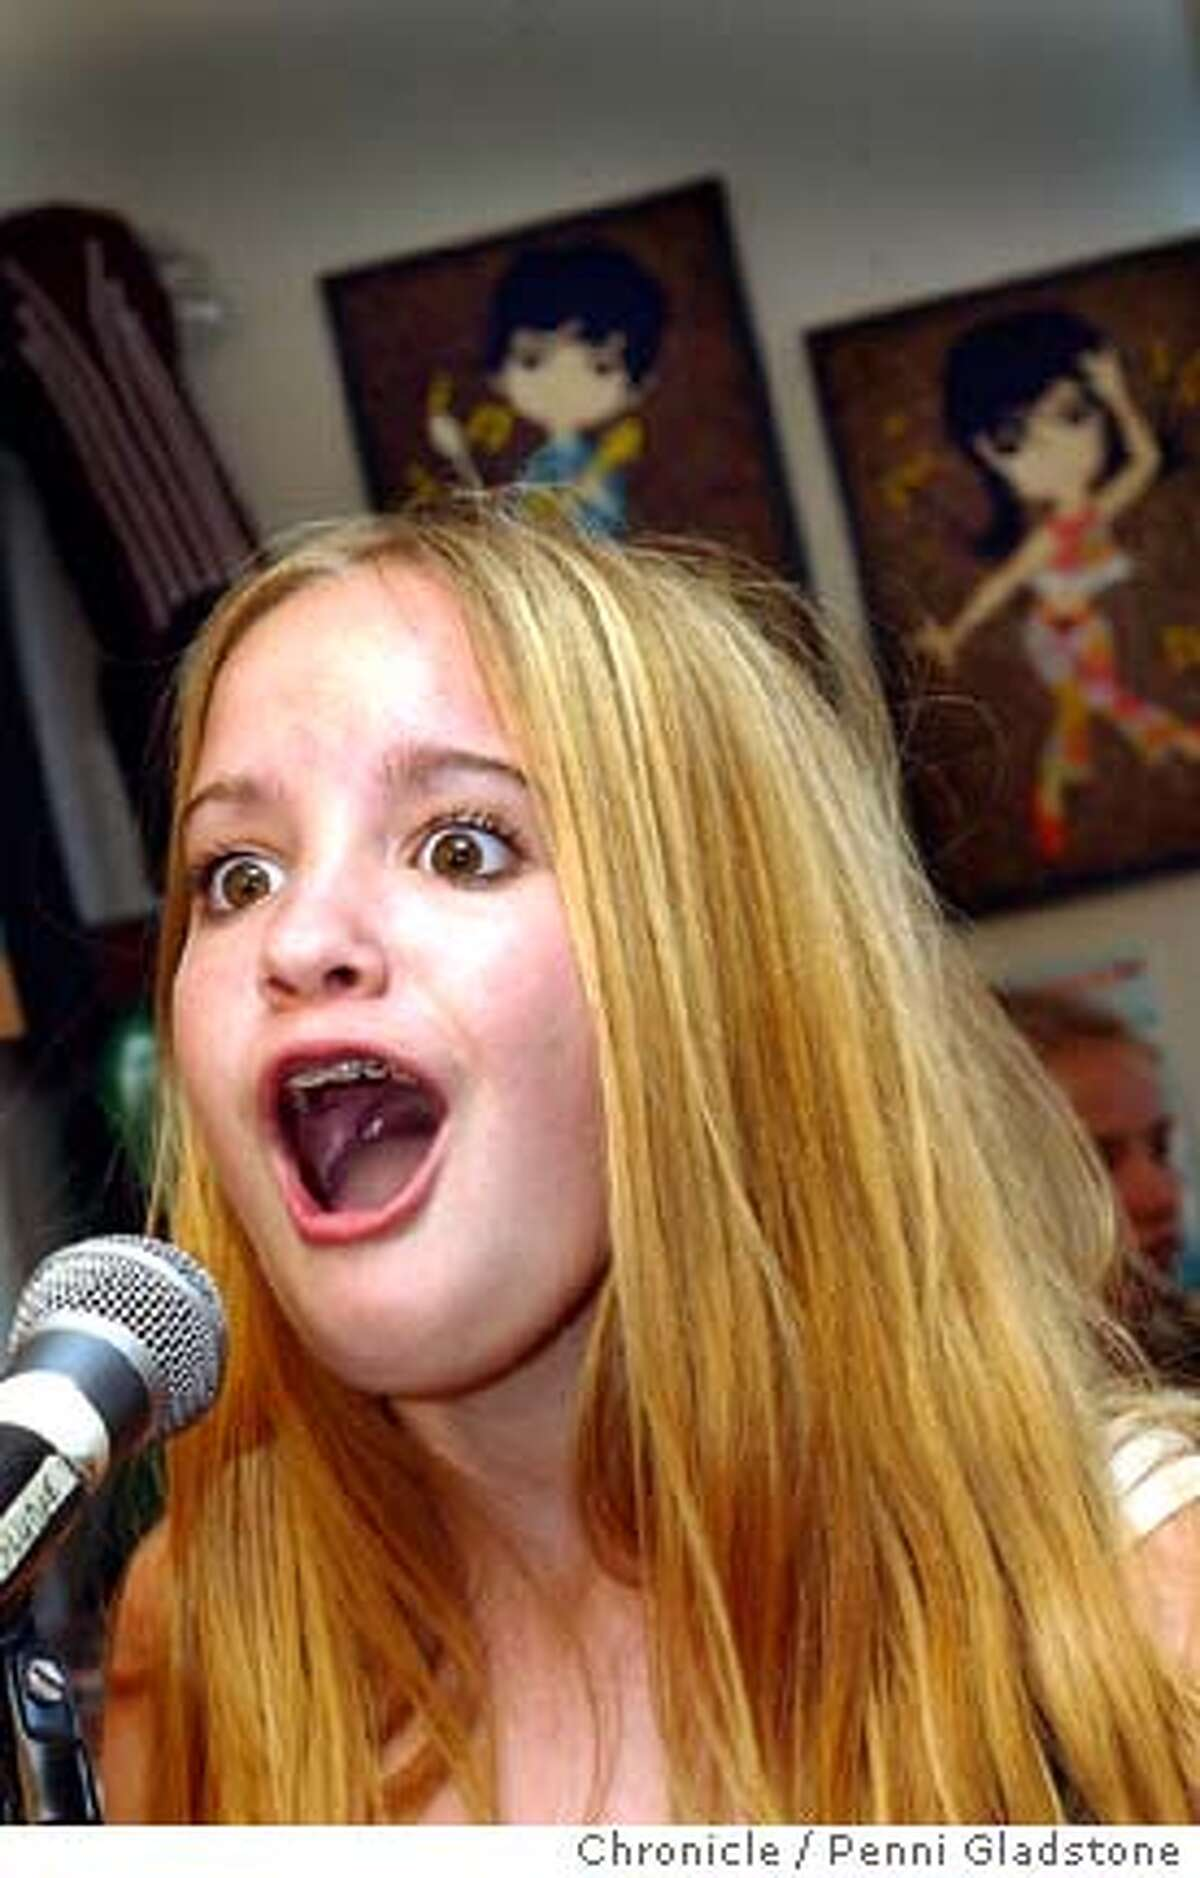 Clare Wlodarczyk age 13 of Curiously Strong sings her heart out during practice. SF's own school of rock, the Rock Academy run by Professor Sludge, aka Eric Lencher. on 6/1/04 in San Francisco, CA. must credit photo by Penni Gladstone/